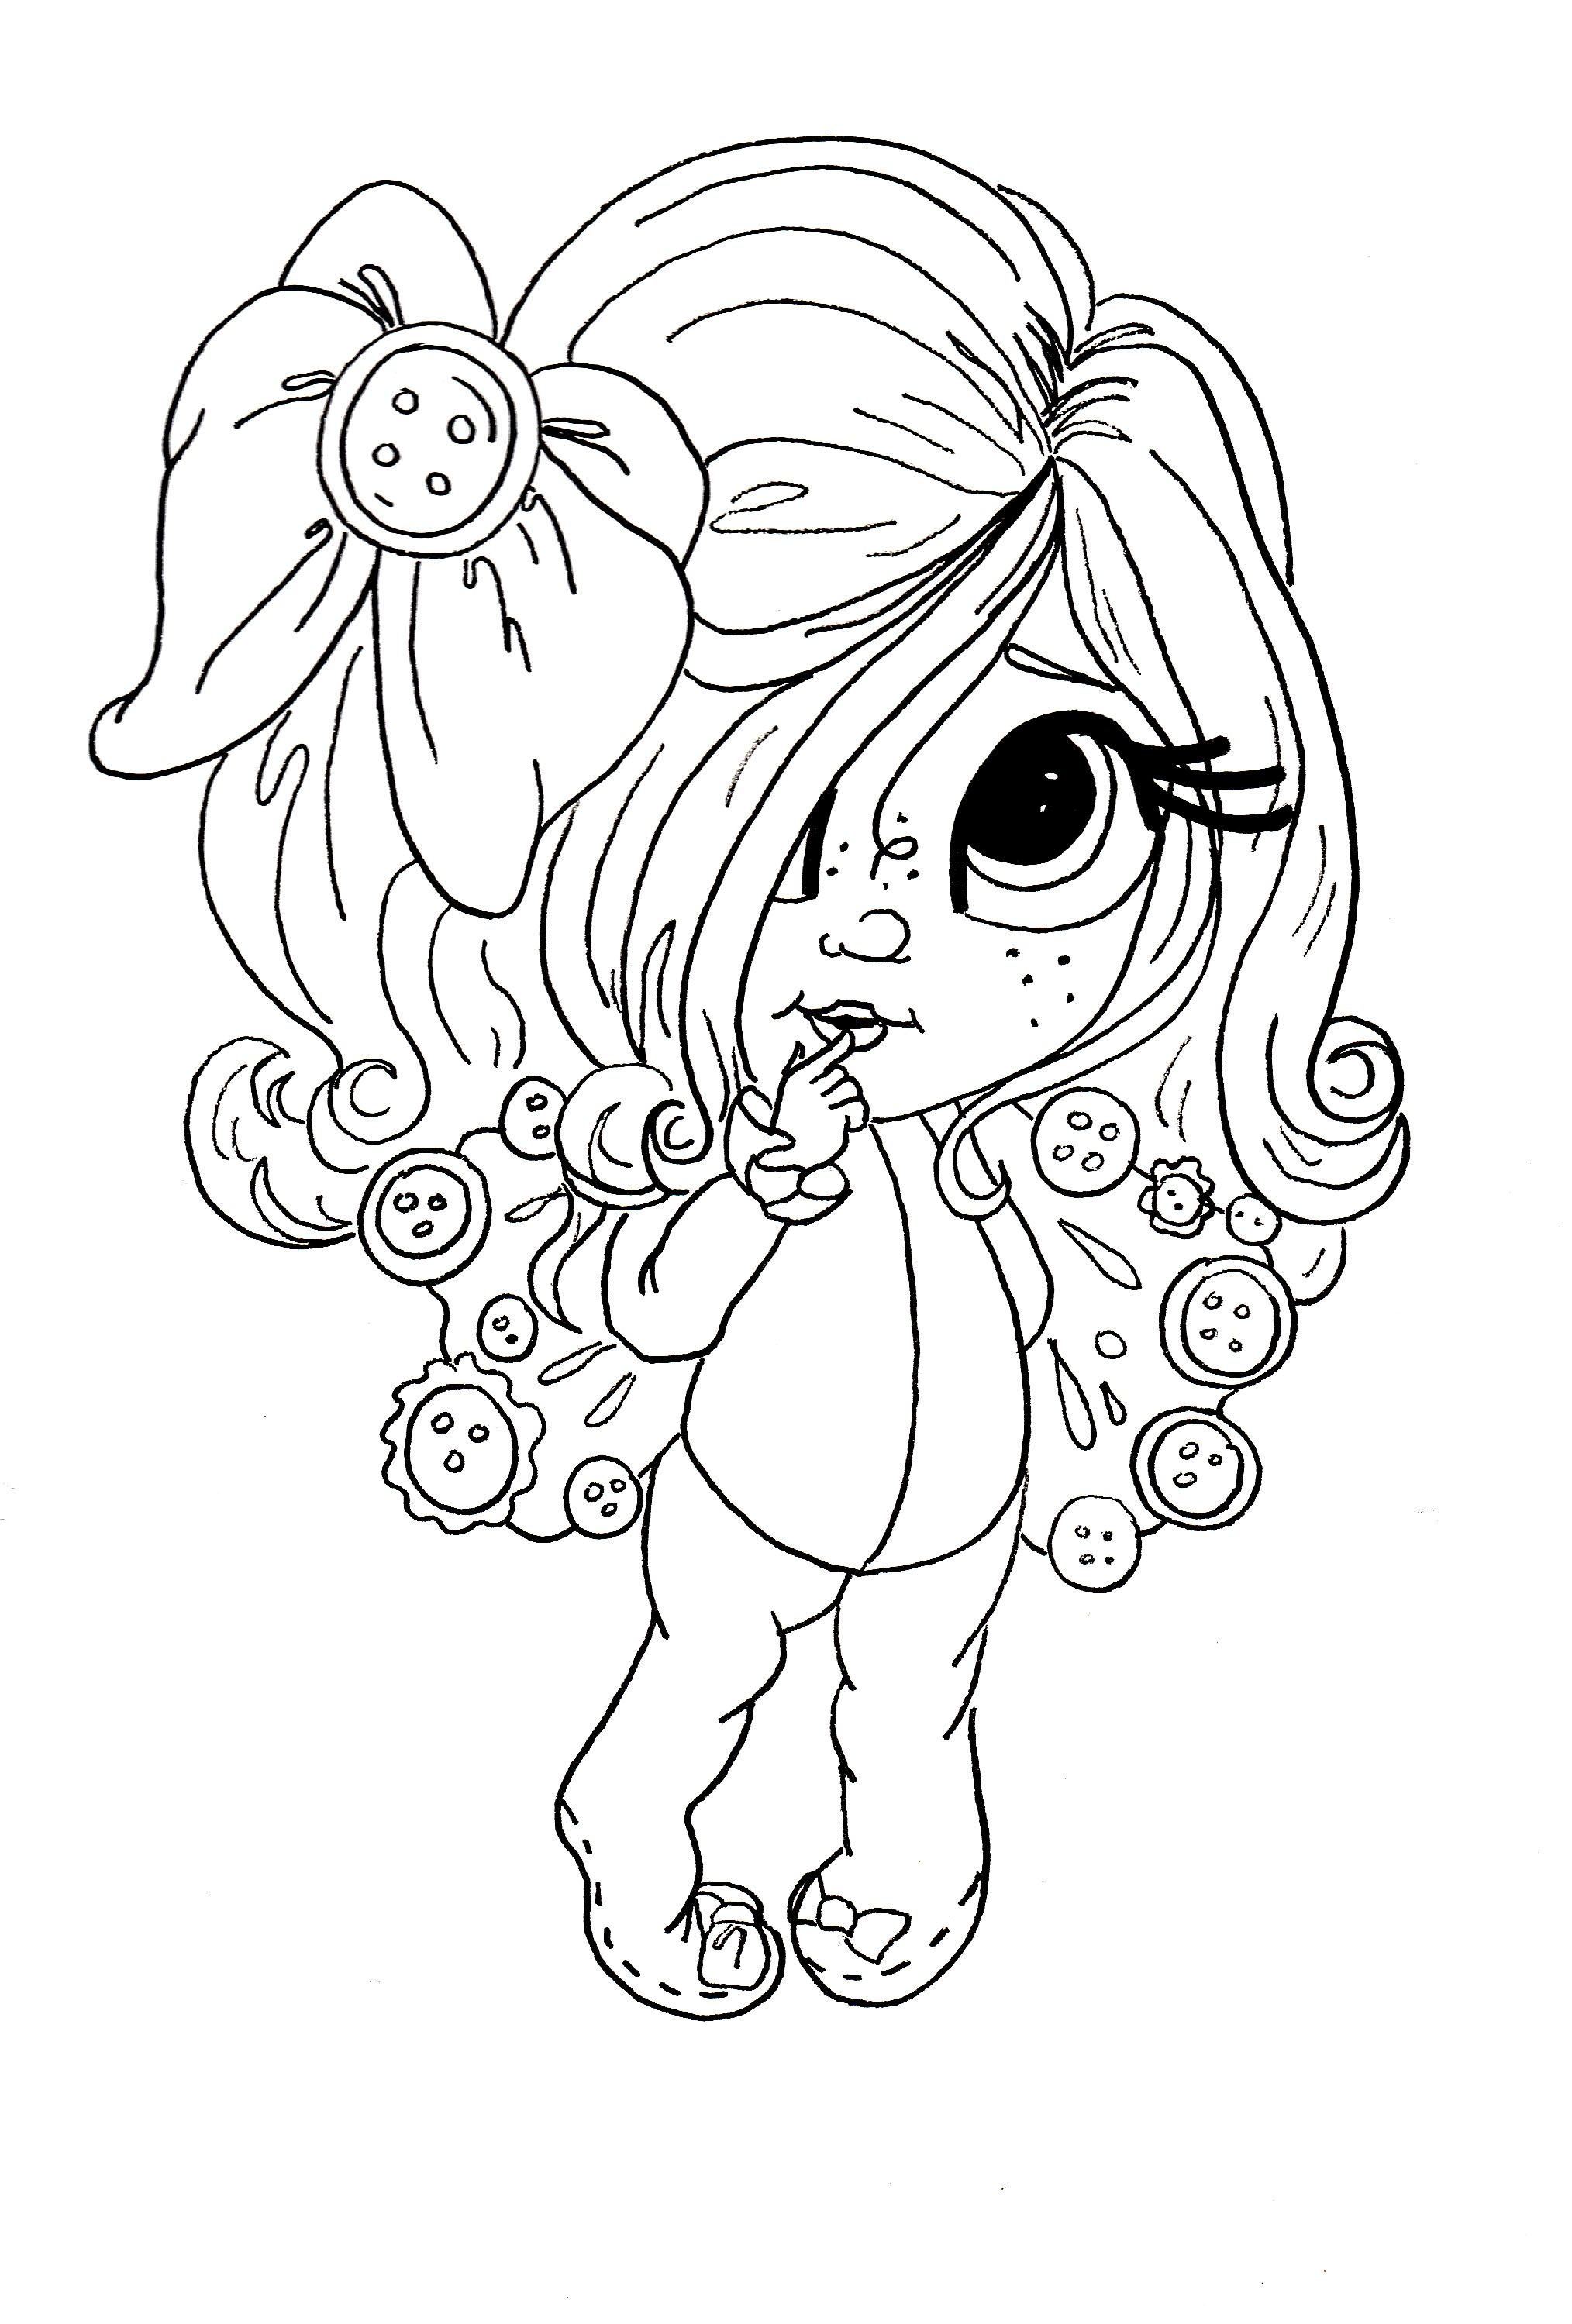 bashful buttom coloring pages adult coloring pages coloring books coloring pages. Black Bedroom Furniture Sets. Home Design Ideas